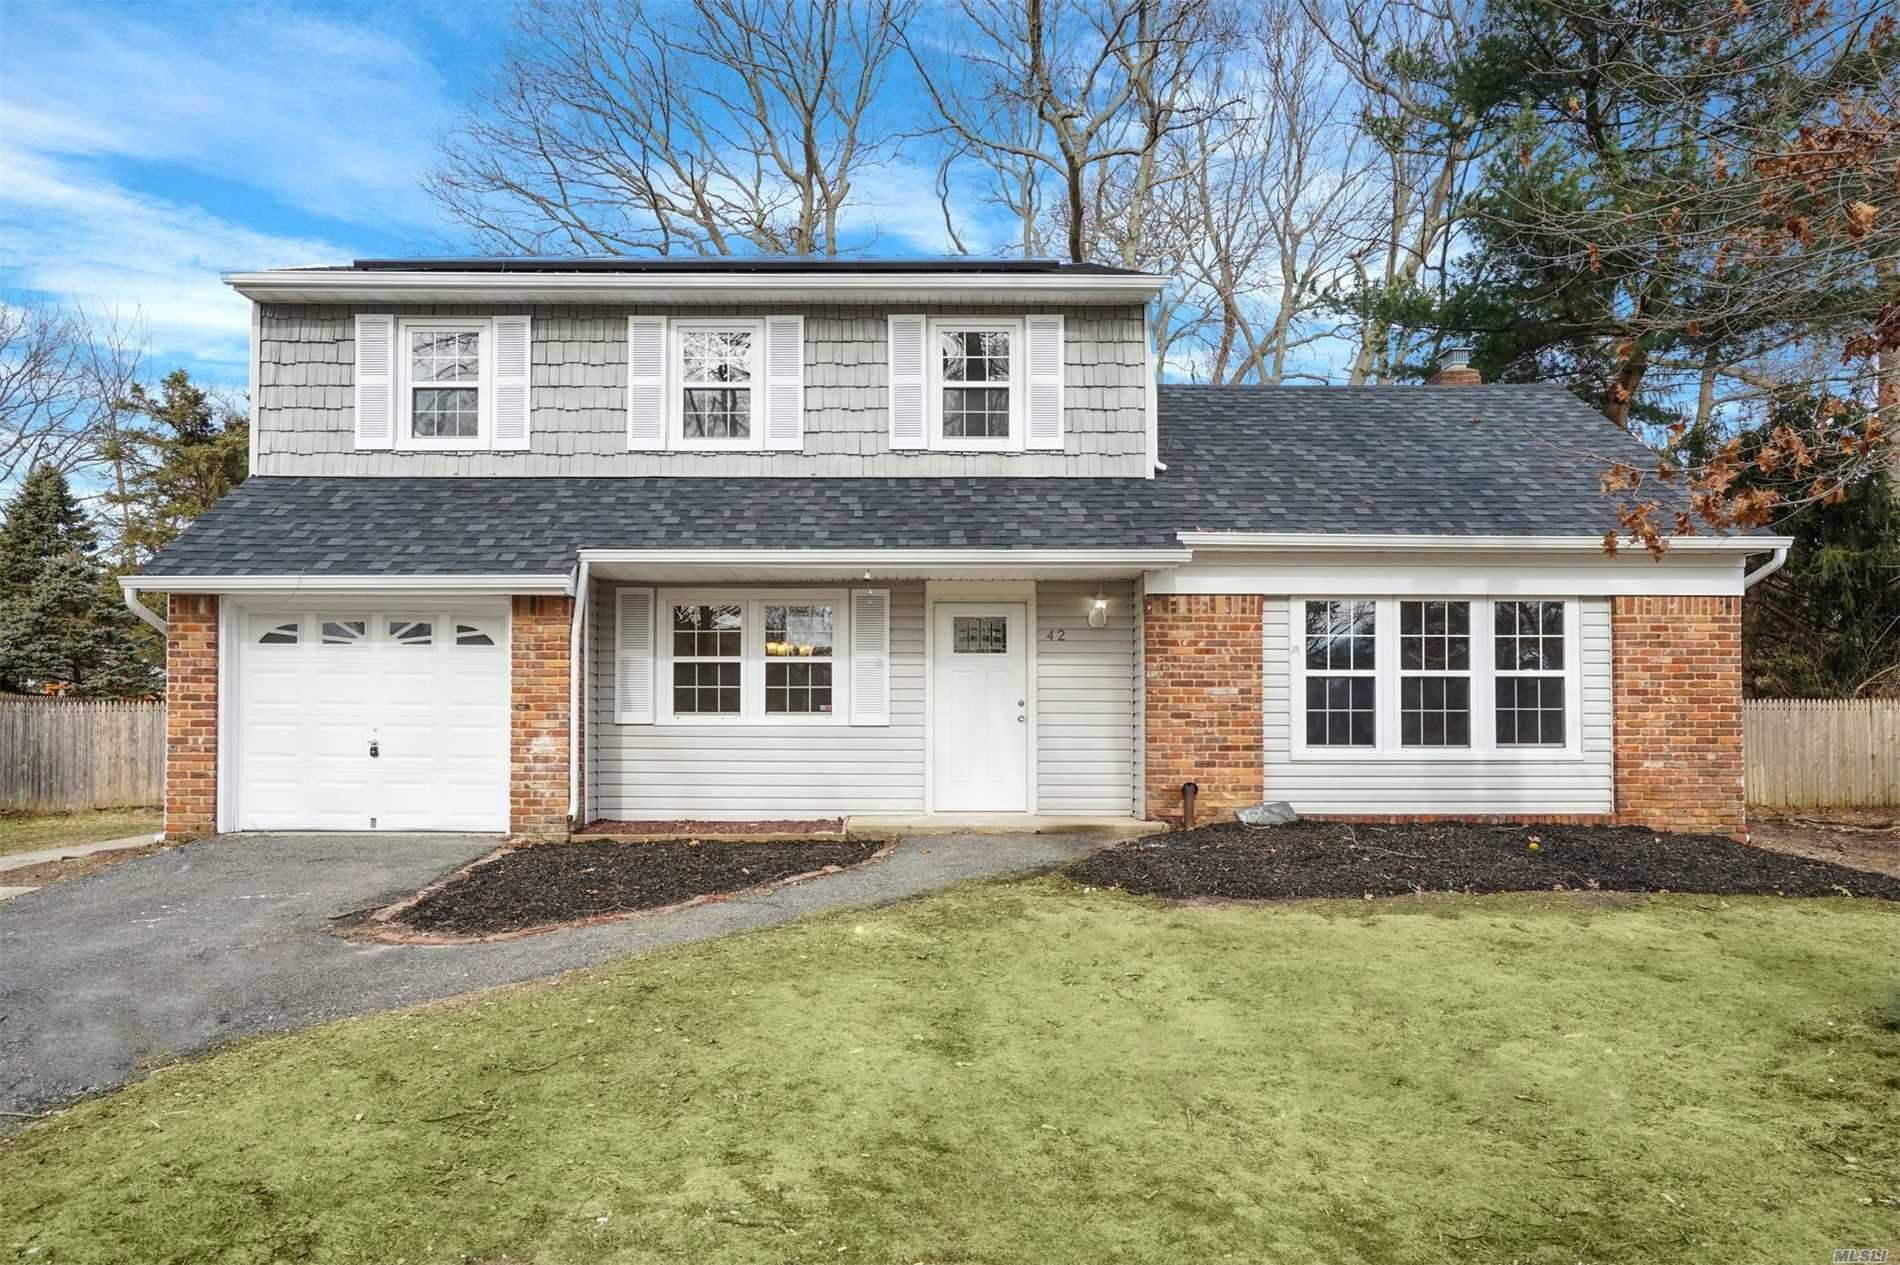 Beautiful 1700 Sq Foot Colonial Home All Newly Renovated 3 Bed 2 1/2 Bath, Kitchen, Den And Fire Place In Den, Large Back Yard Fenced In And Home Offers A 2 Year Warranty.